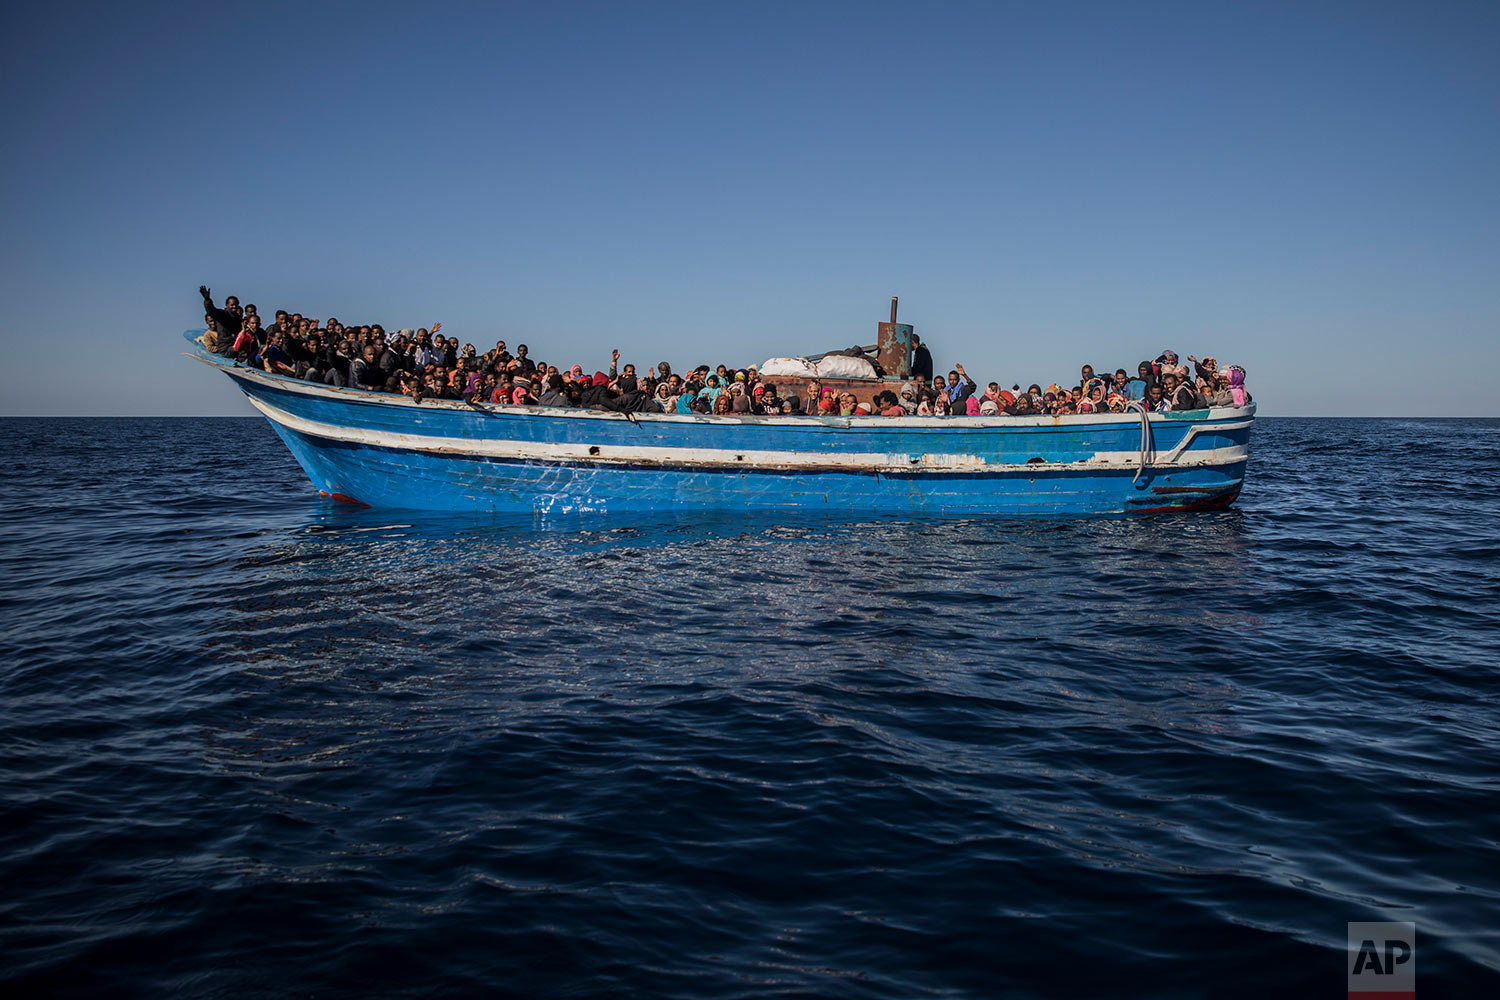 In this Tuesday, Jan. 16, 2018, photo, about 450 Sub-Saharan refugees and migrants, mostly from Eritrea, wait to be rescued by aid workers of Spanish NGO Proactiva Open Arms, as they were trying to leave the Libyan coast and reach European soil aboard an overcrowded wooden boat, 34 miles north of Kasr-El-Karabulli, Libya. (AP Photo/Santi Palacios)